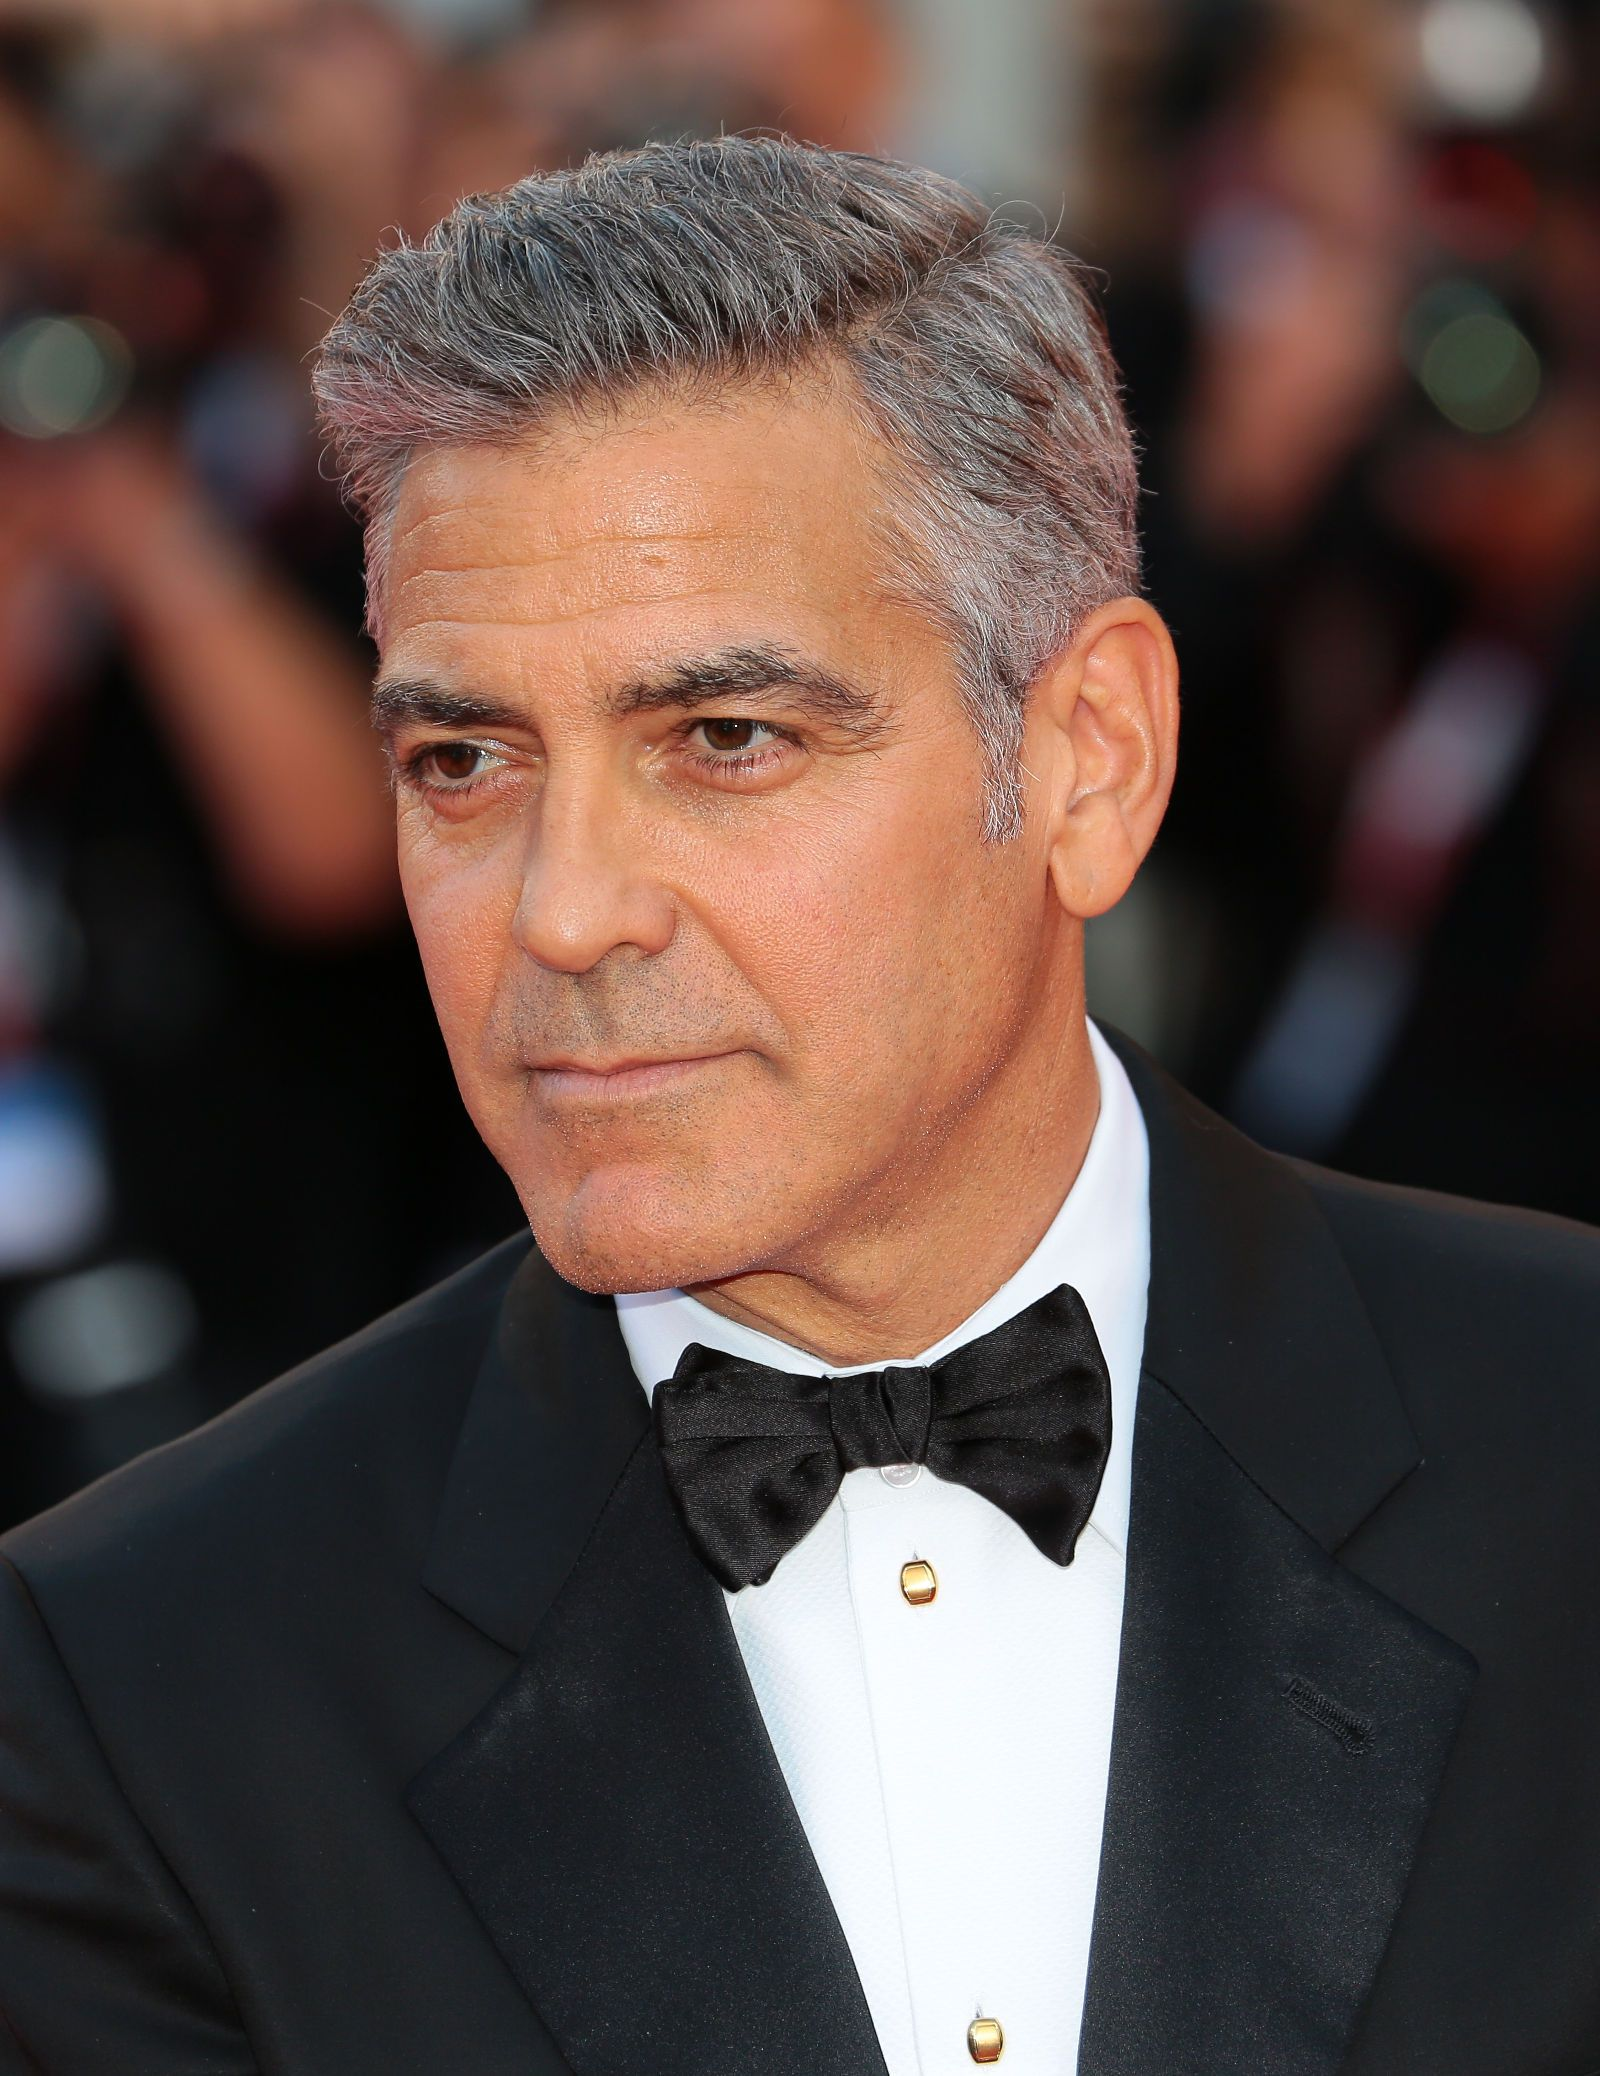 glorious hairstyles for men with grey hair aka silver foxes